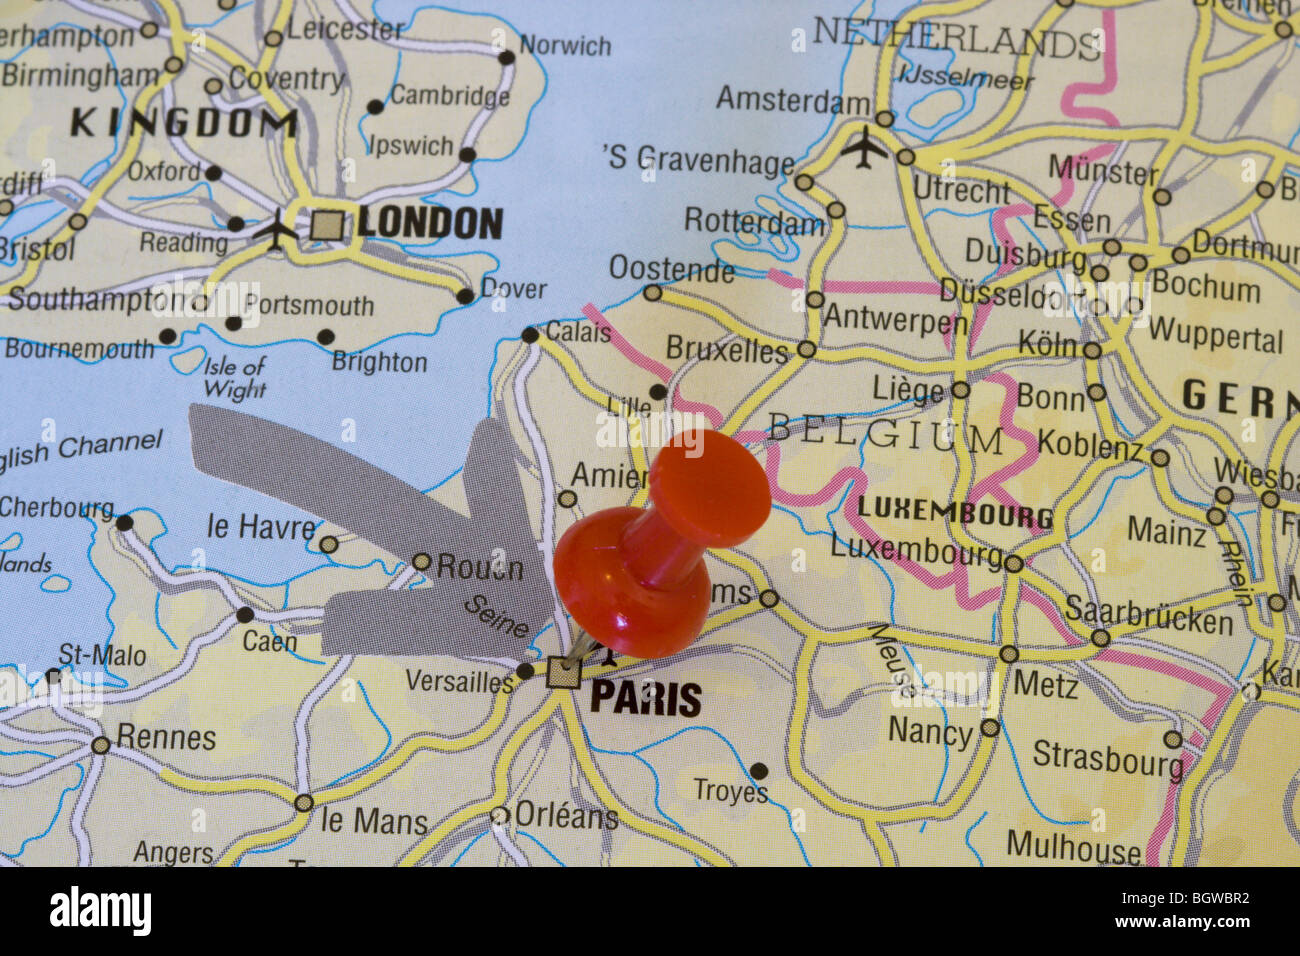 Map Of France With Paris.Map Of France With Pin On Paris Stock Photo 27602934 Alamy